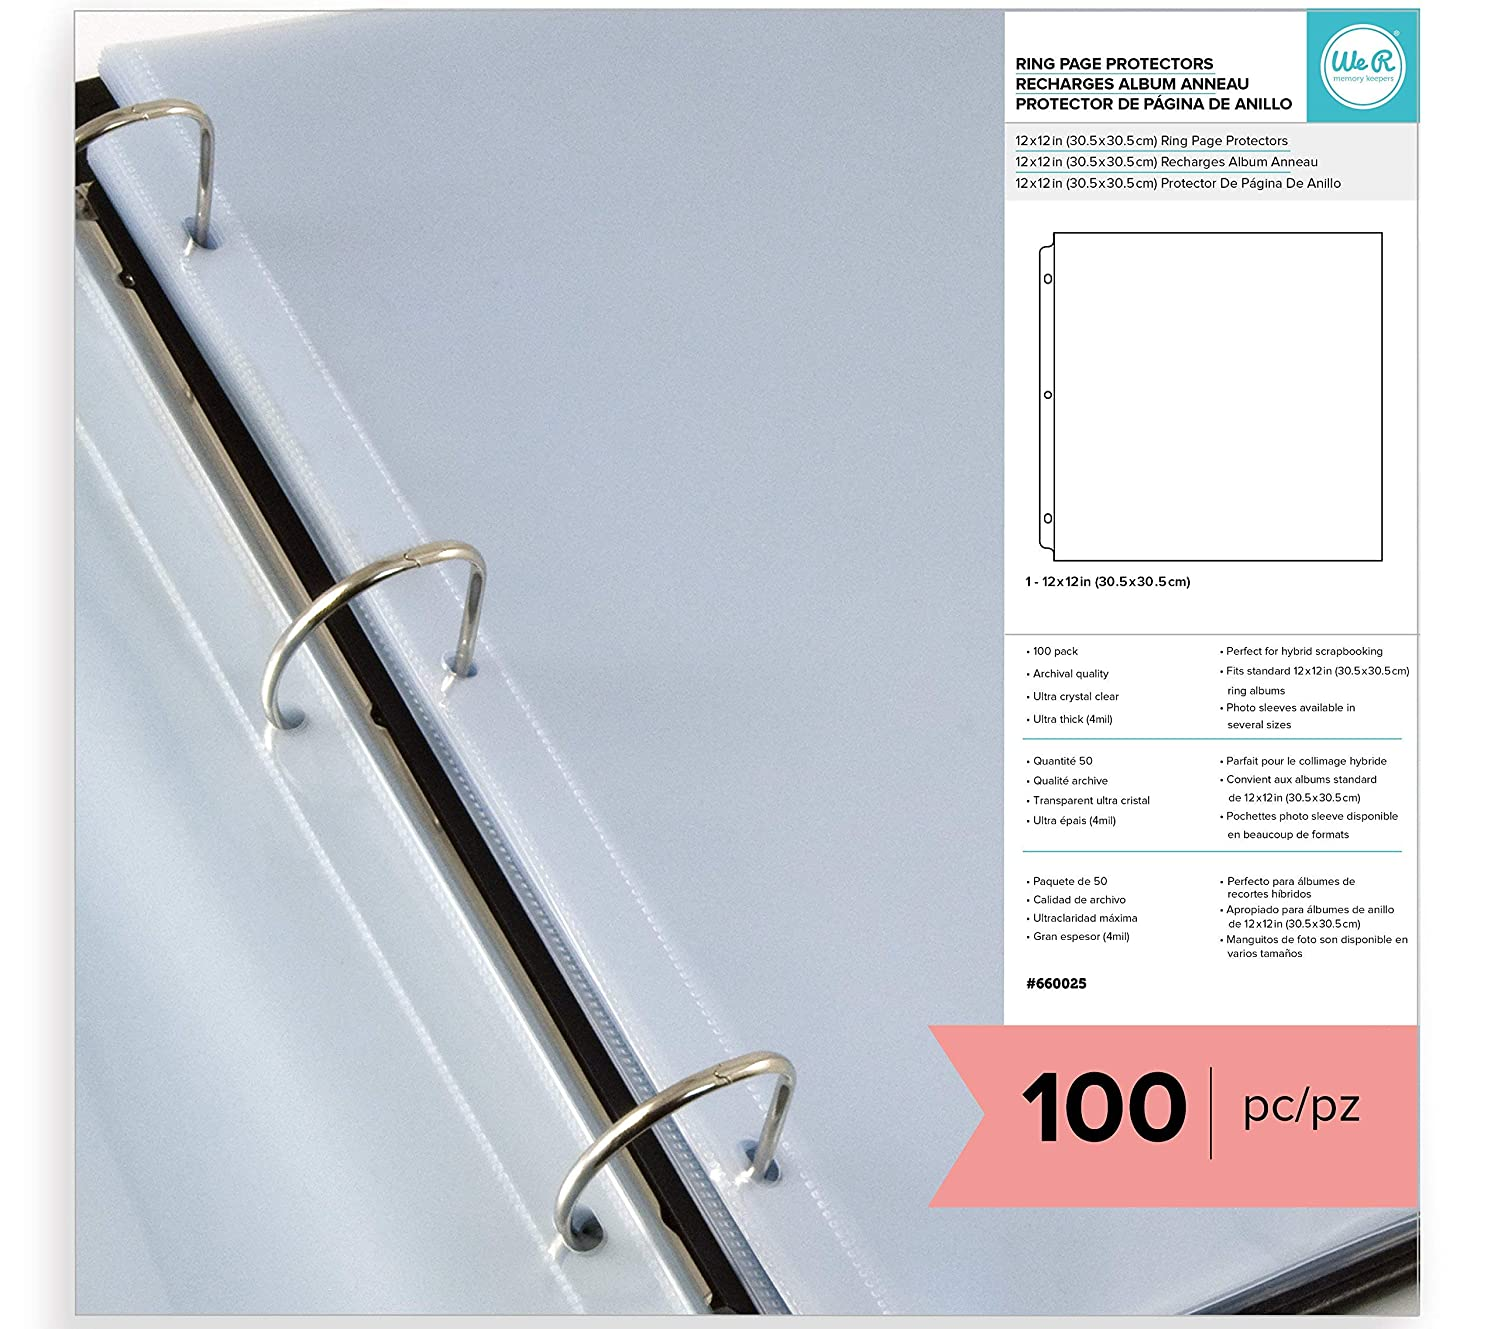 American Crafts 12 x 12-inch 3-Ring Album Page Protectors by We R Memory Keepers | 100 Pack